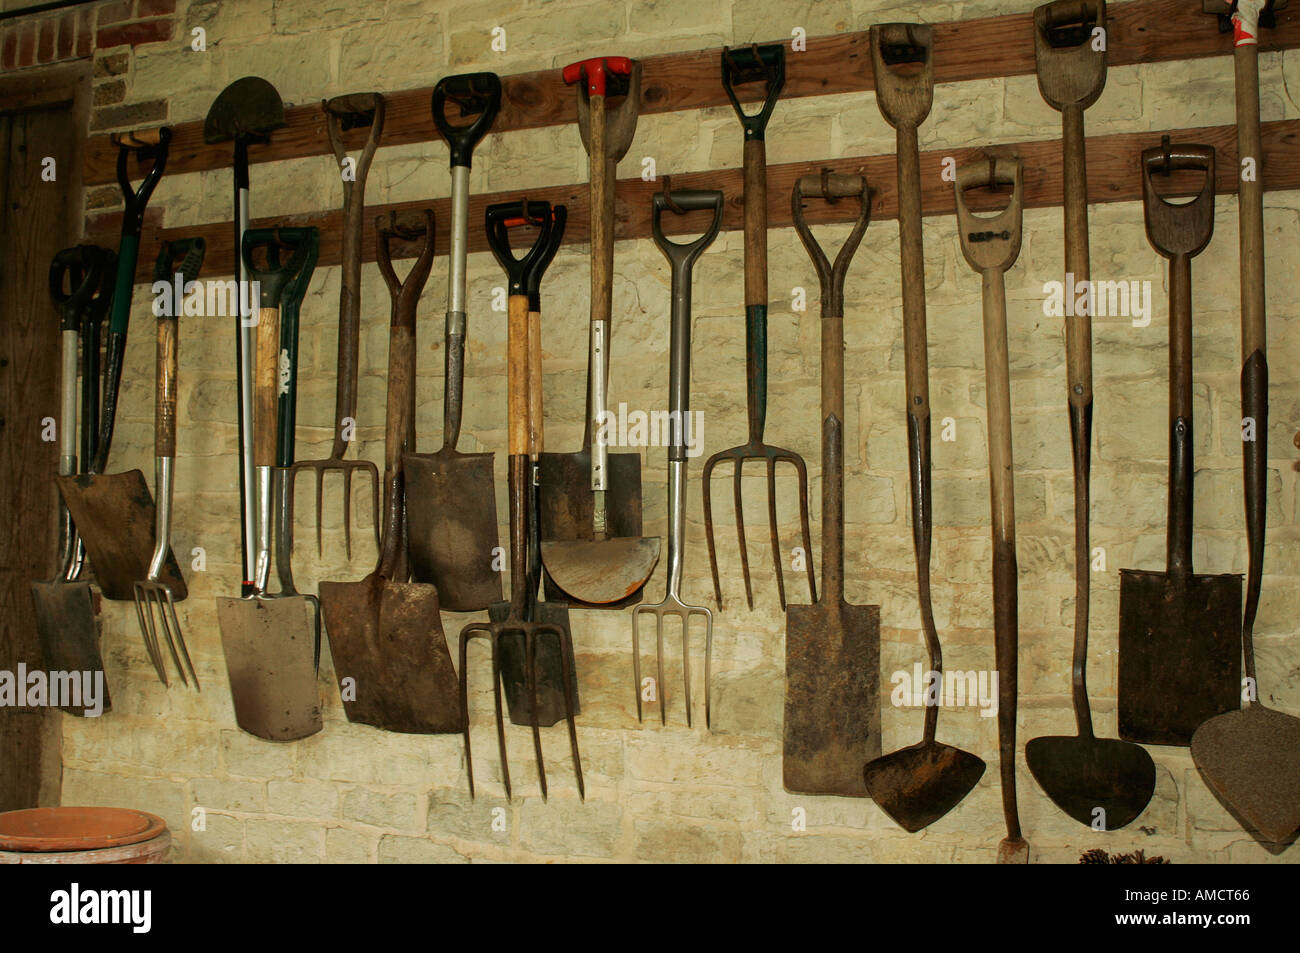 and yards lawsonreport tool hanger collection the of wooden floor images rhpinterestcom internet space rack on most awesome garden